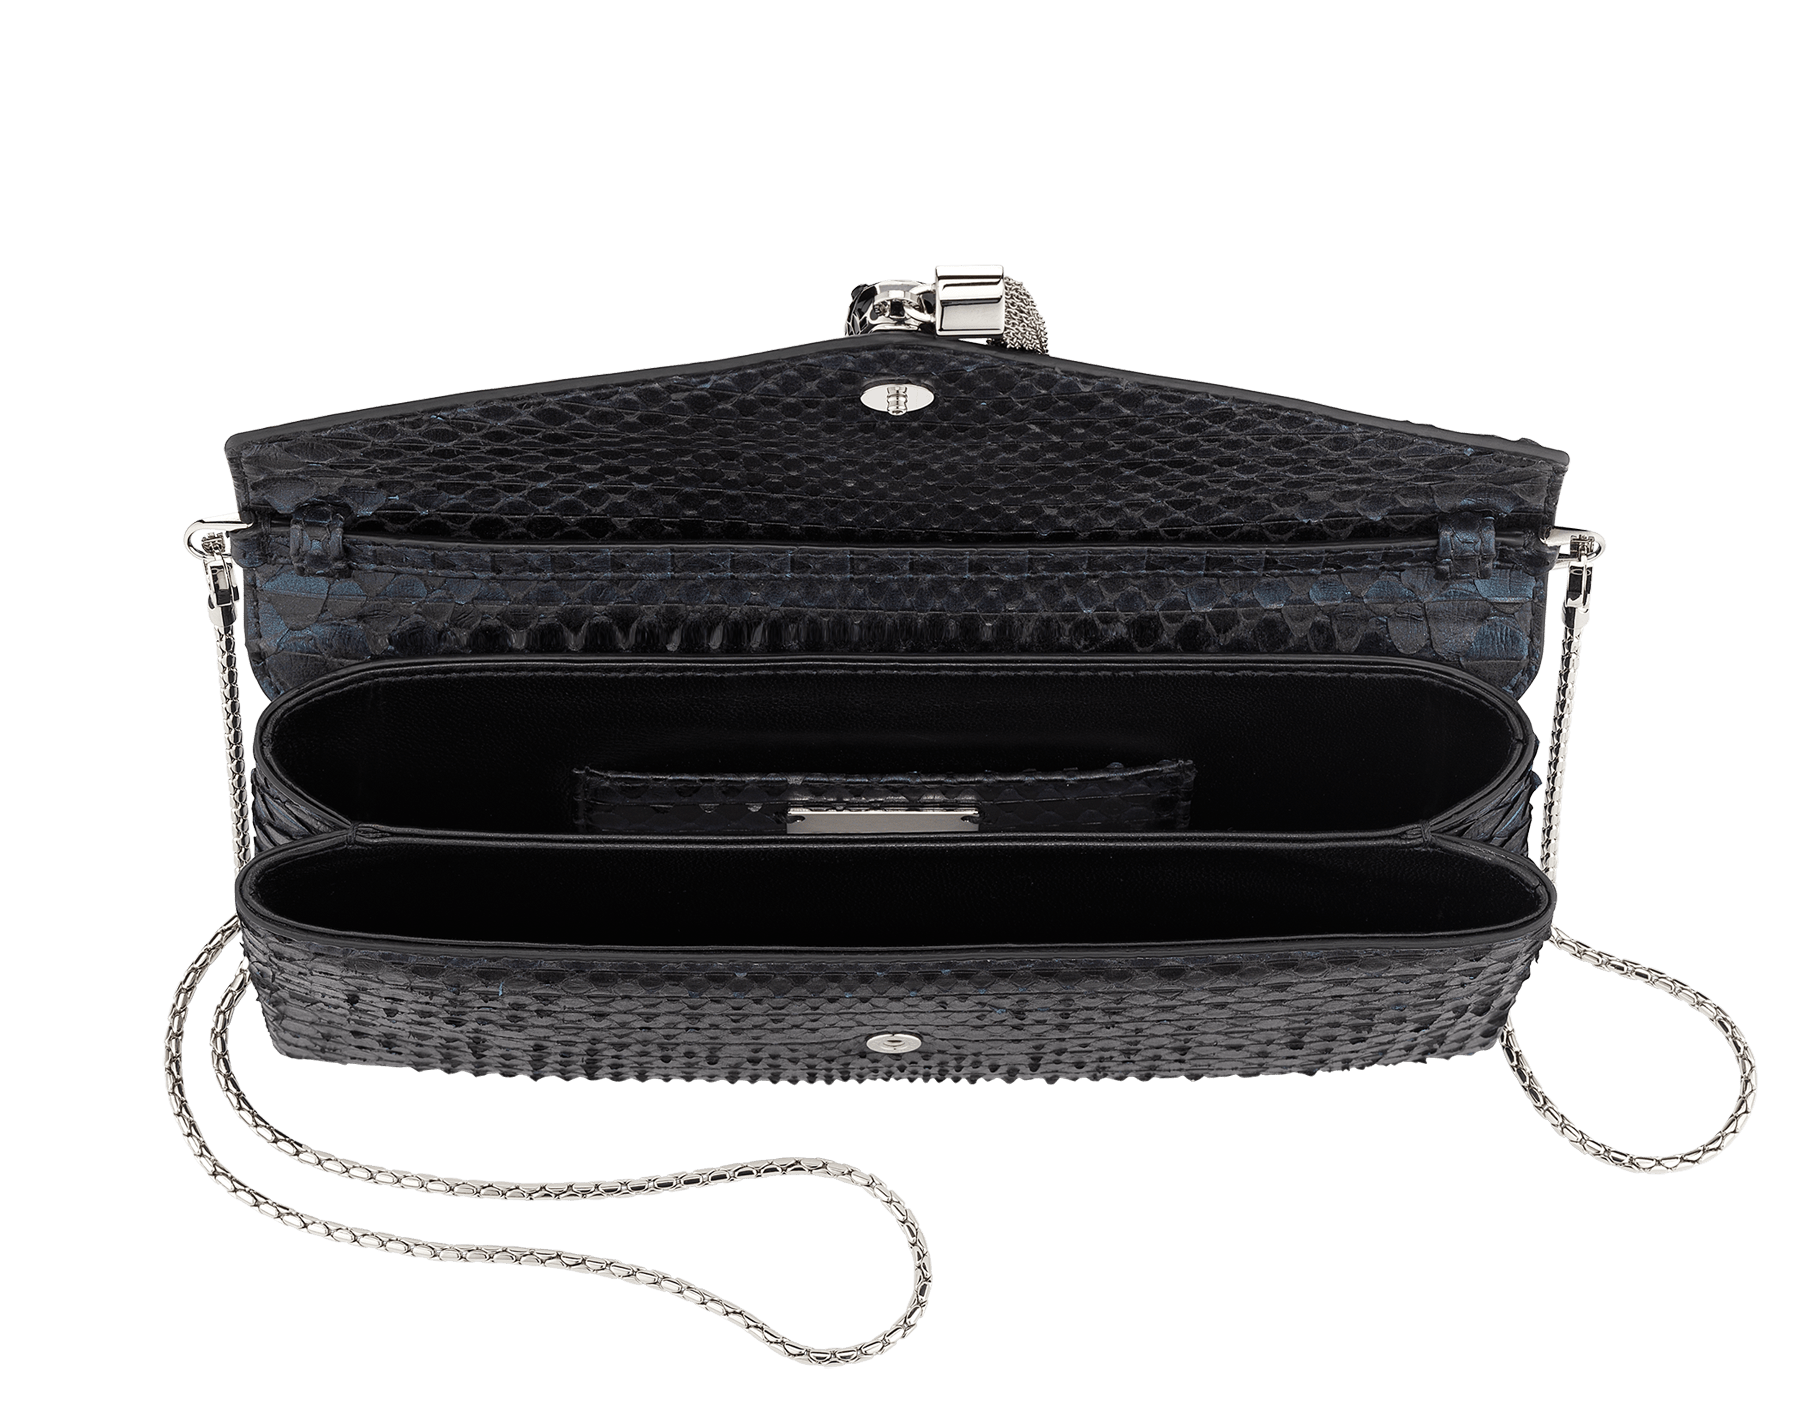 """Serpenti"" evening clutch bag in deep jade Plissé python skin. Iconic snakehead stud closure with tassel in palladium plated brass enriched with black and deep jade enamel and black onyx eyes. 288168 image 4"